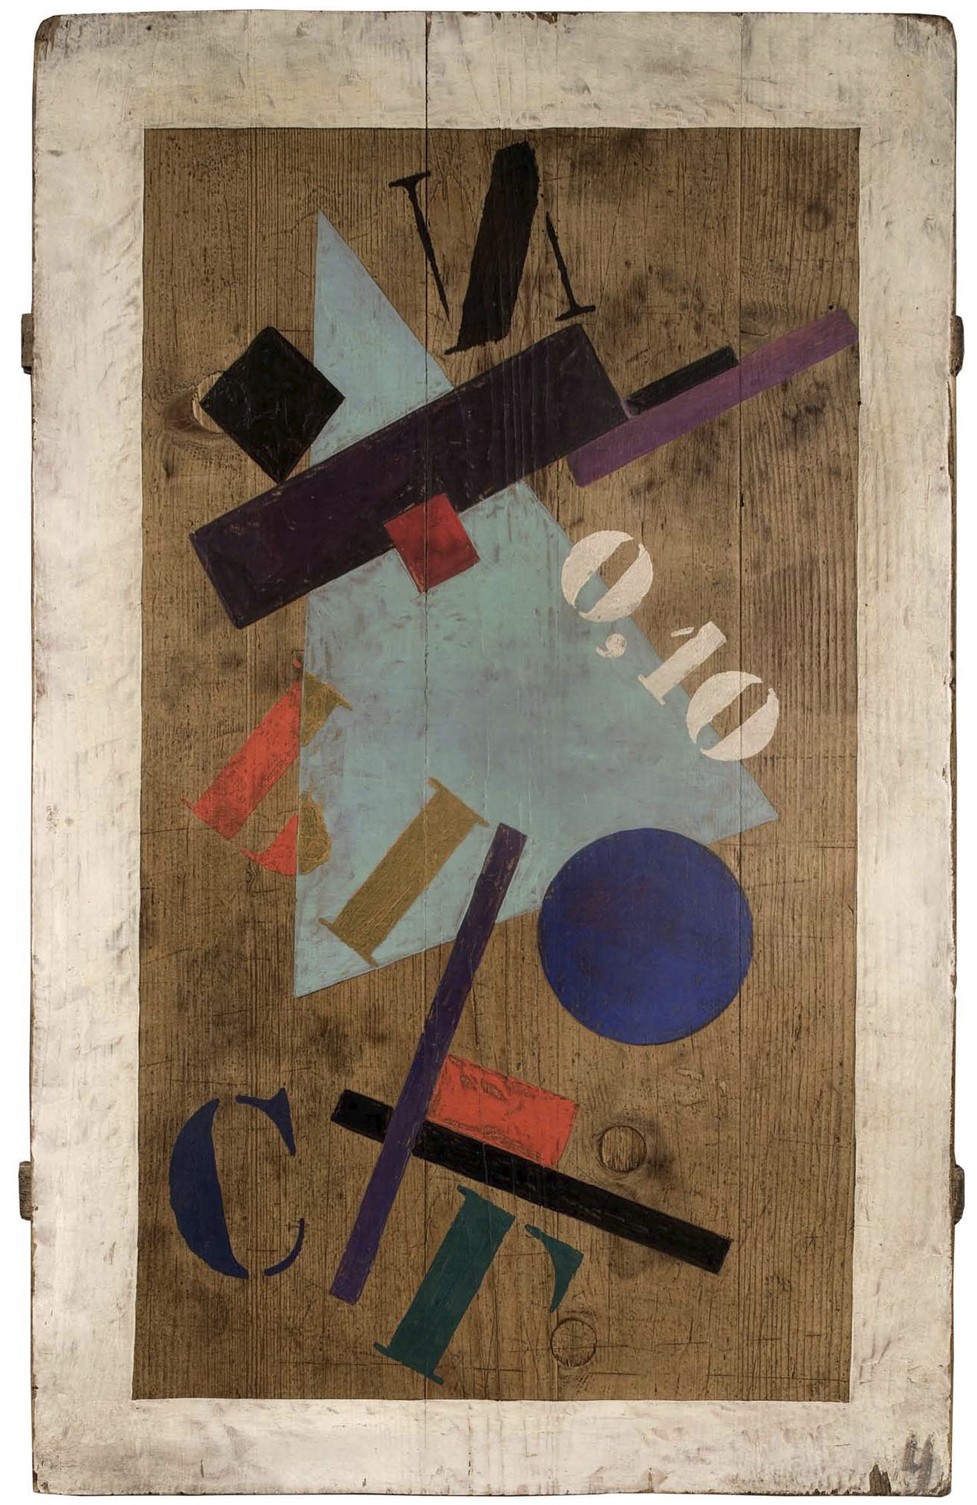 Unattributed. Unsigned. In the style of Kasimir Malevich.Oil on wooden plank. 64 x 40 cm.